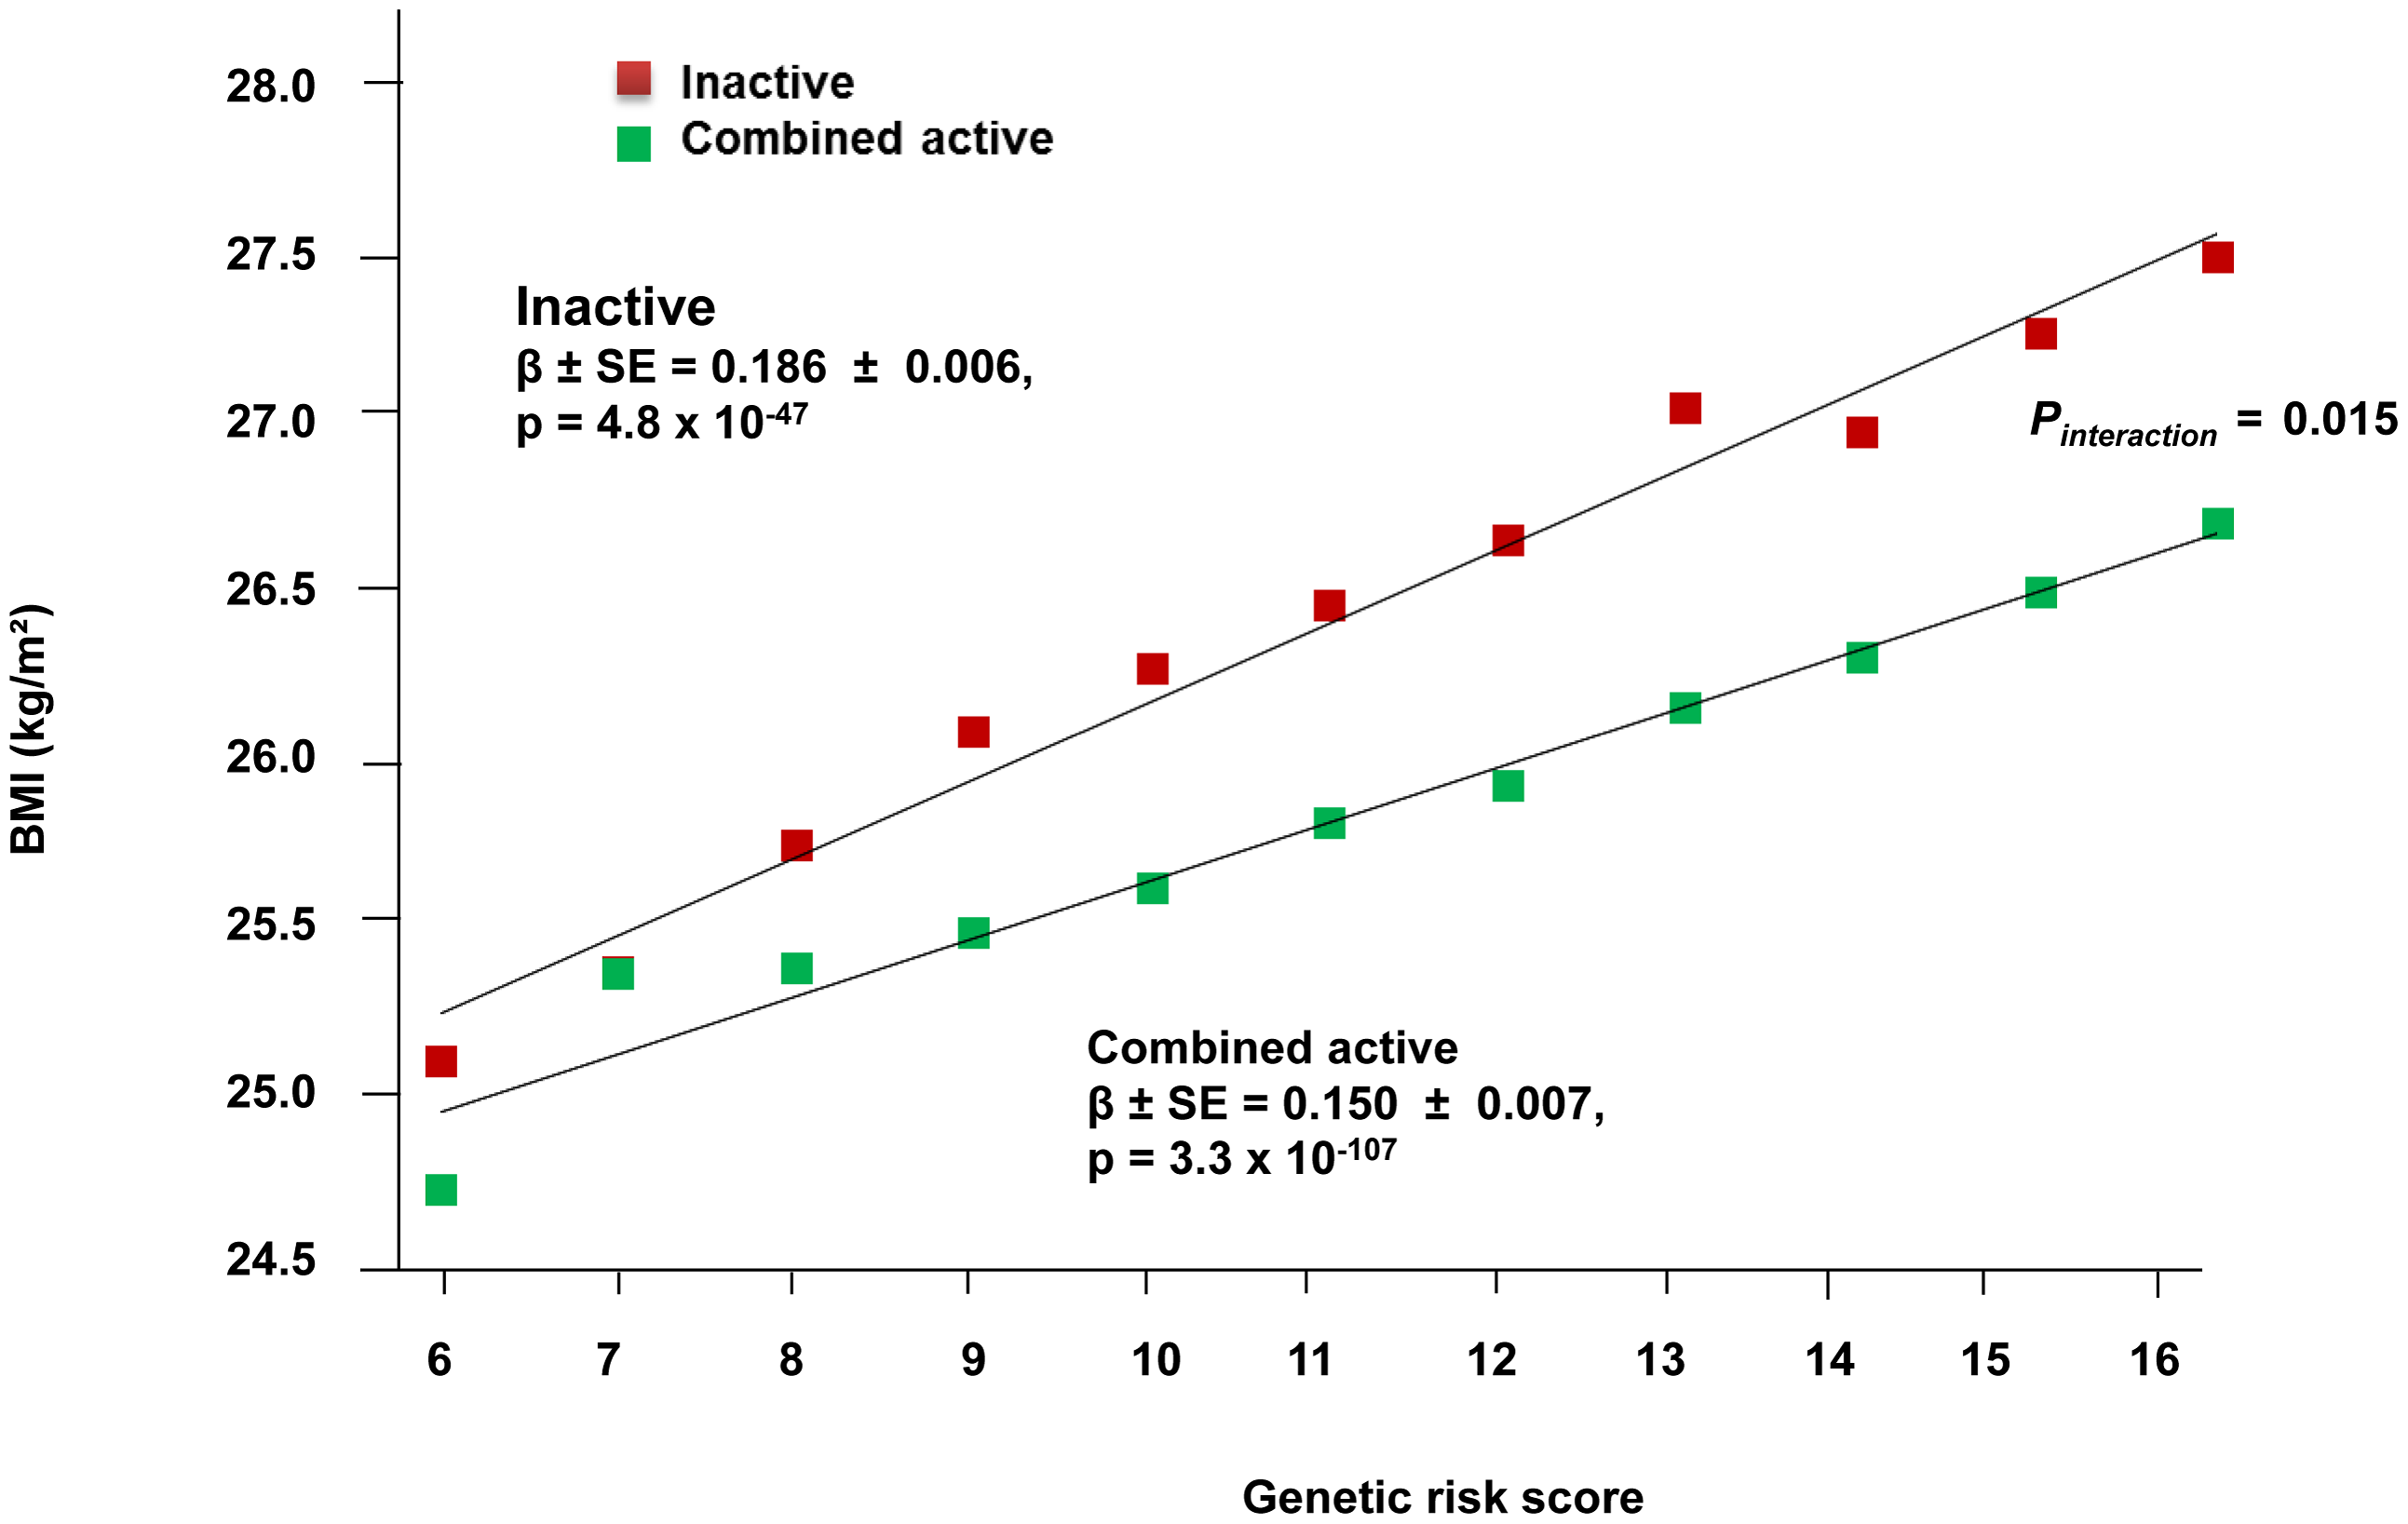 Association between the GRS and BMI in the inactive and 'combined active' groups (N = 111,421).